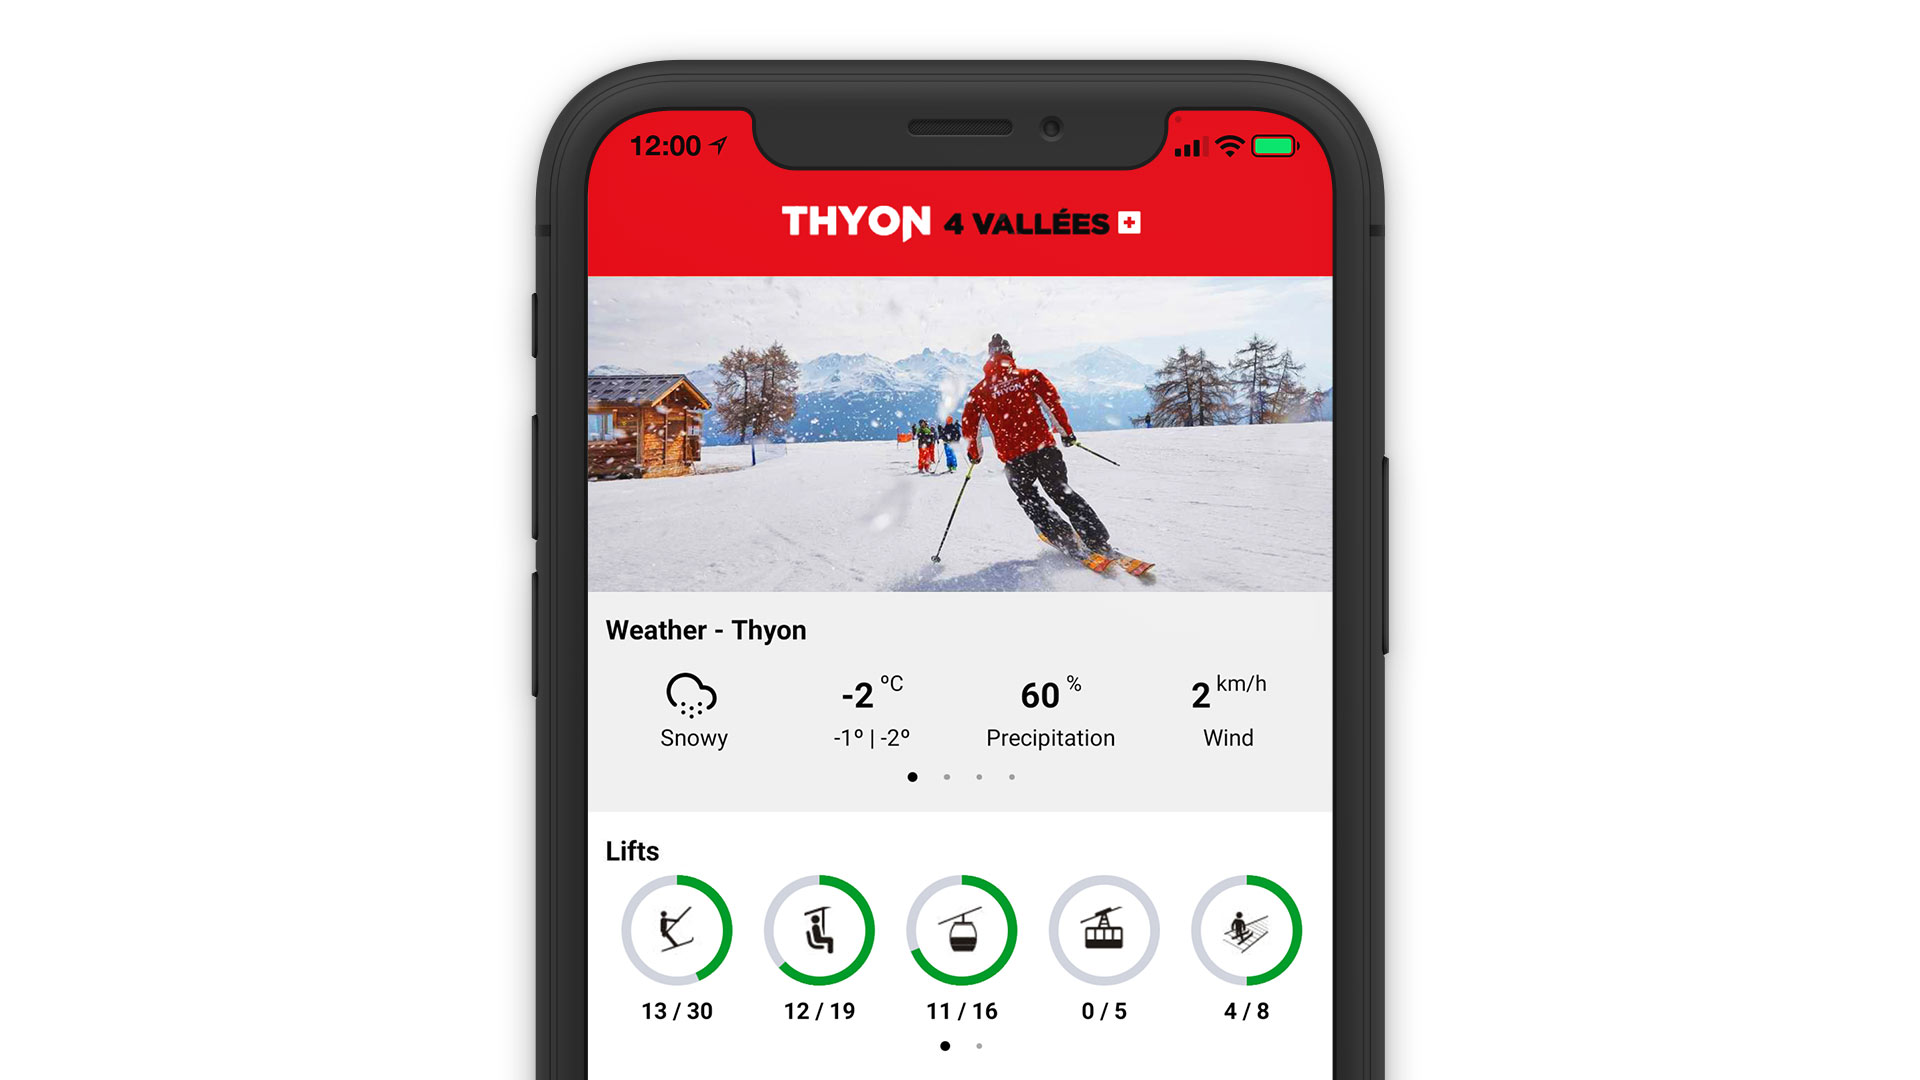 thyon-booking-system-reservation-solution-mobile-app-online-direct-booking-laptop